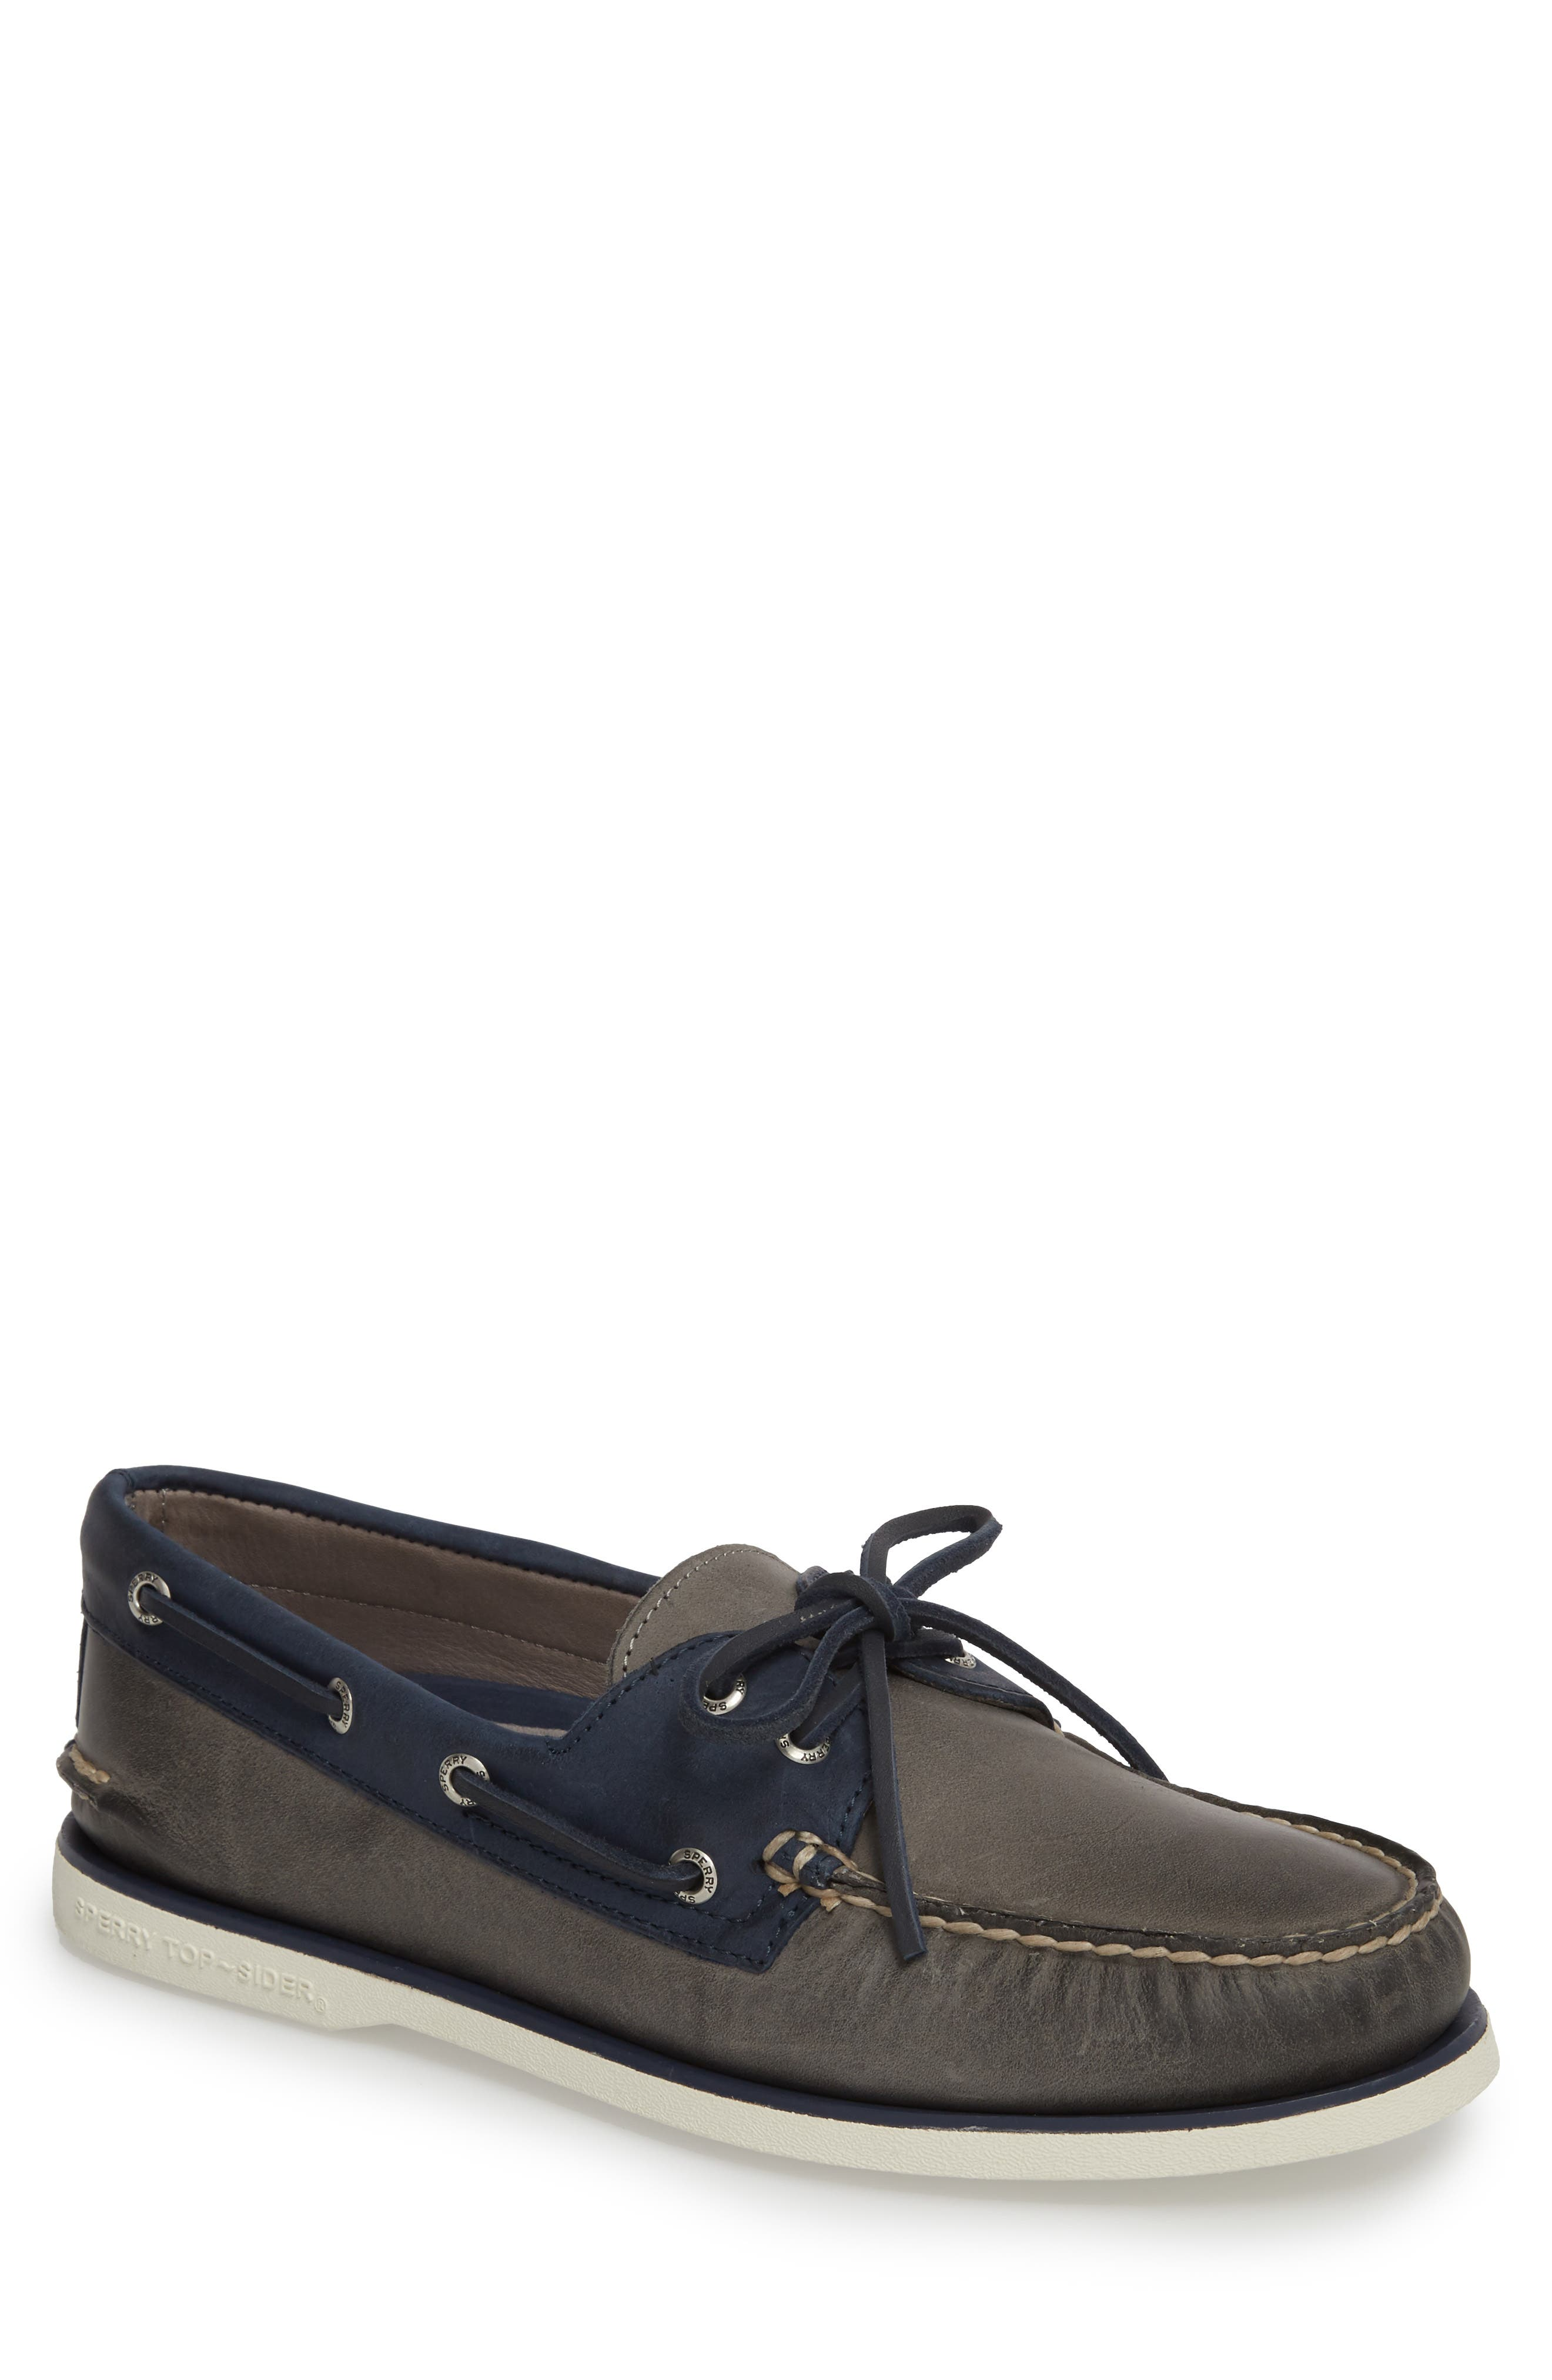 Gold Cup Authentic Original Boat Shoe, Main, color, GREY/ NAVY LEATHER